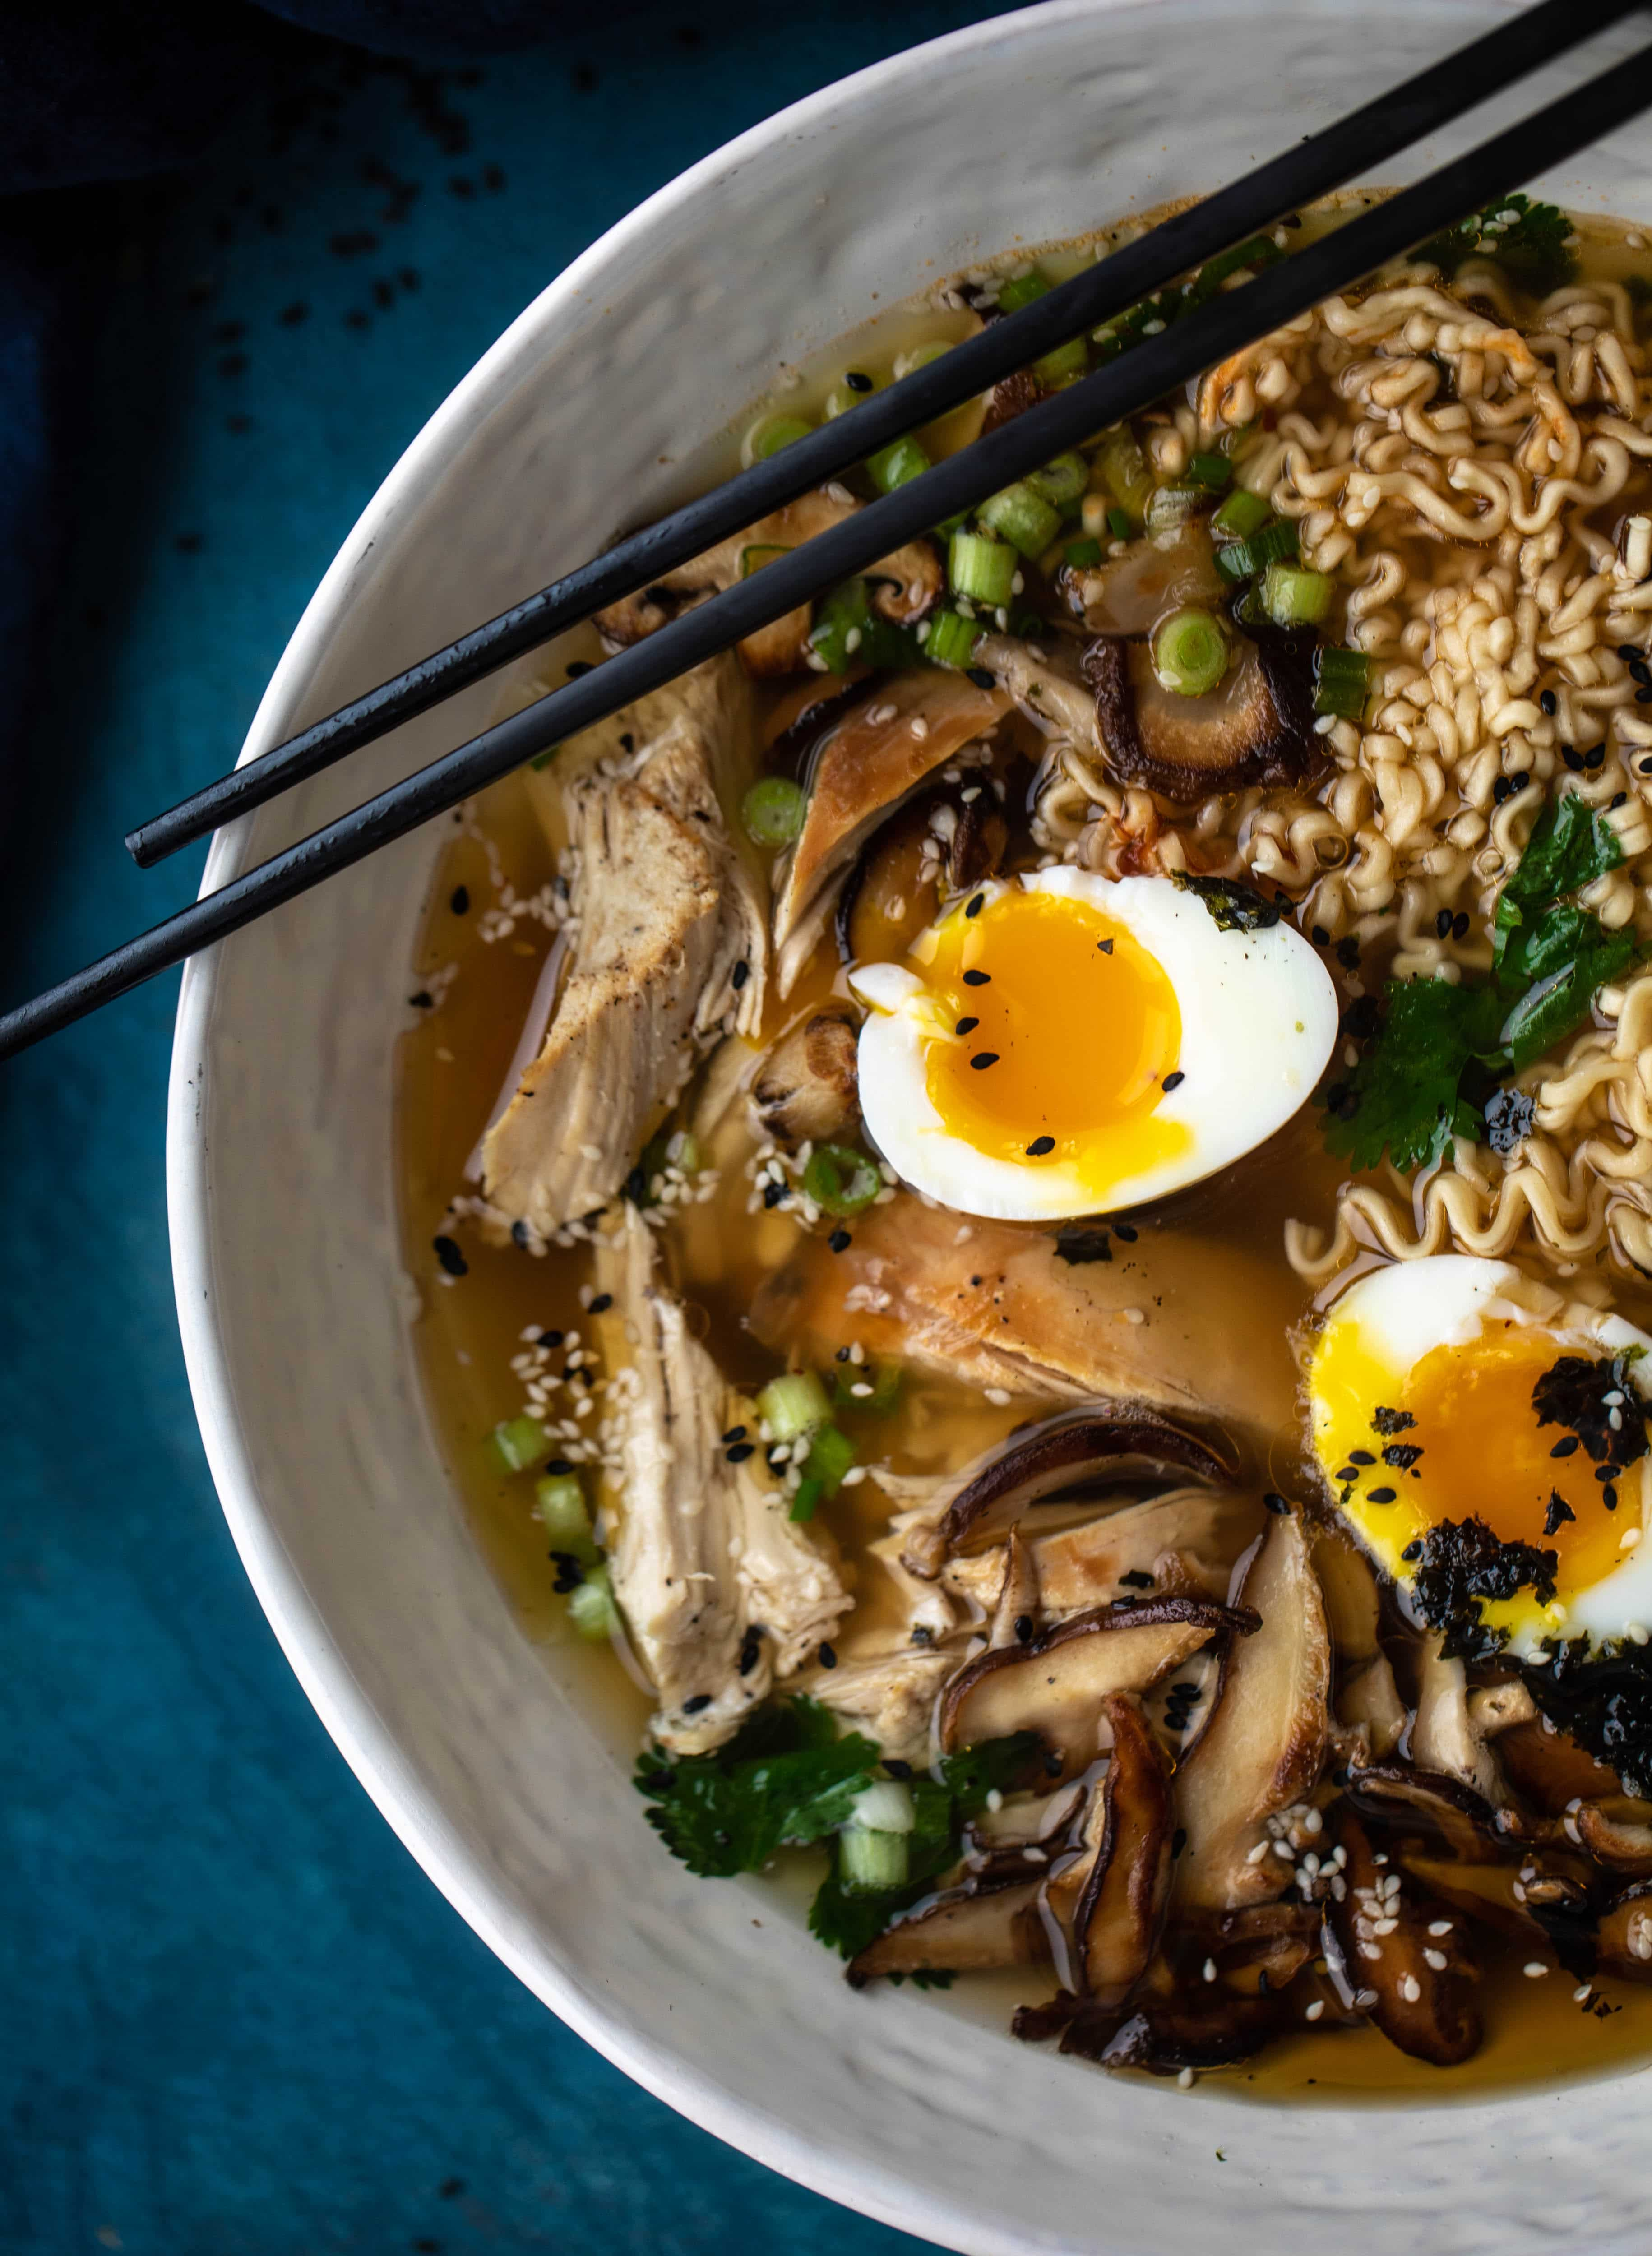 This roasted turkey ramen recipe is made with delish leftover Thanksgiving turkey, ramen noodles, a savory broth and soft boiled eggs!